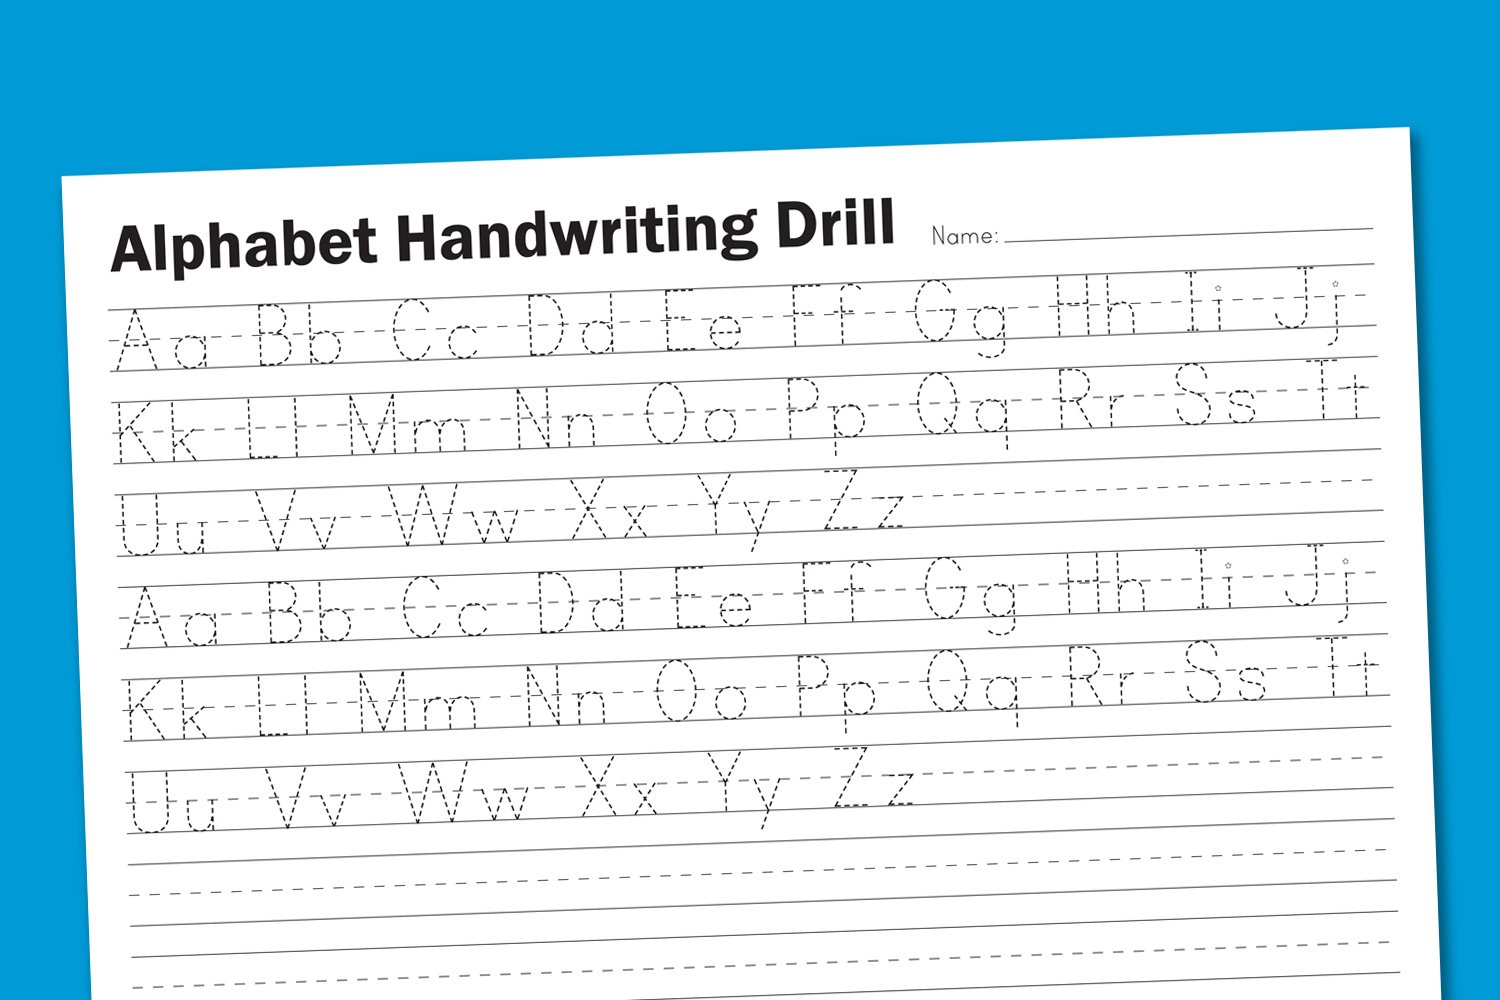 Worksheets Handwriting Worksheets Free Printable alphabet handwriting drill paging supermom